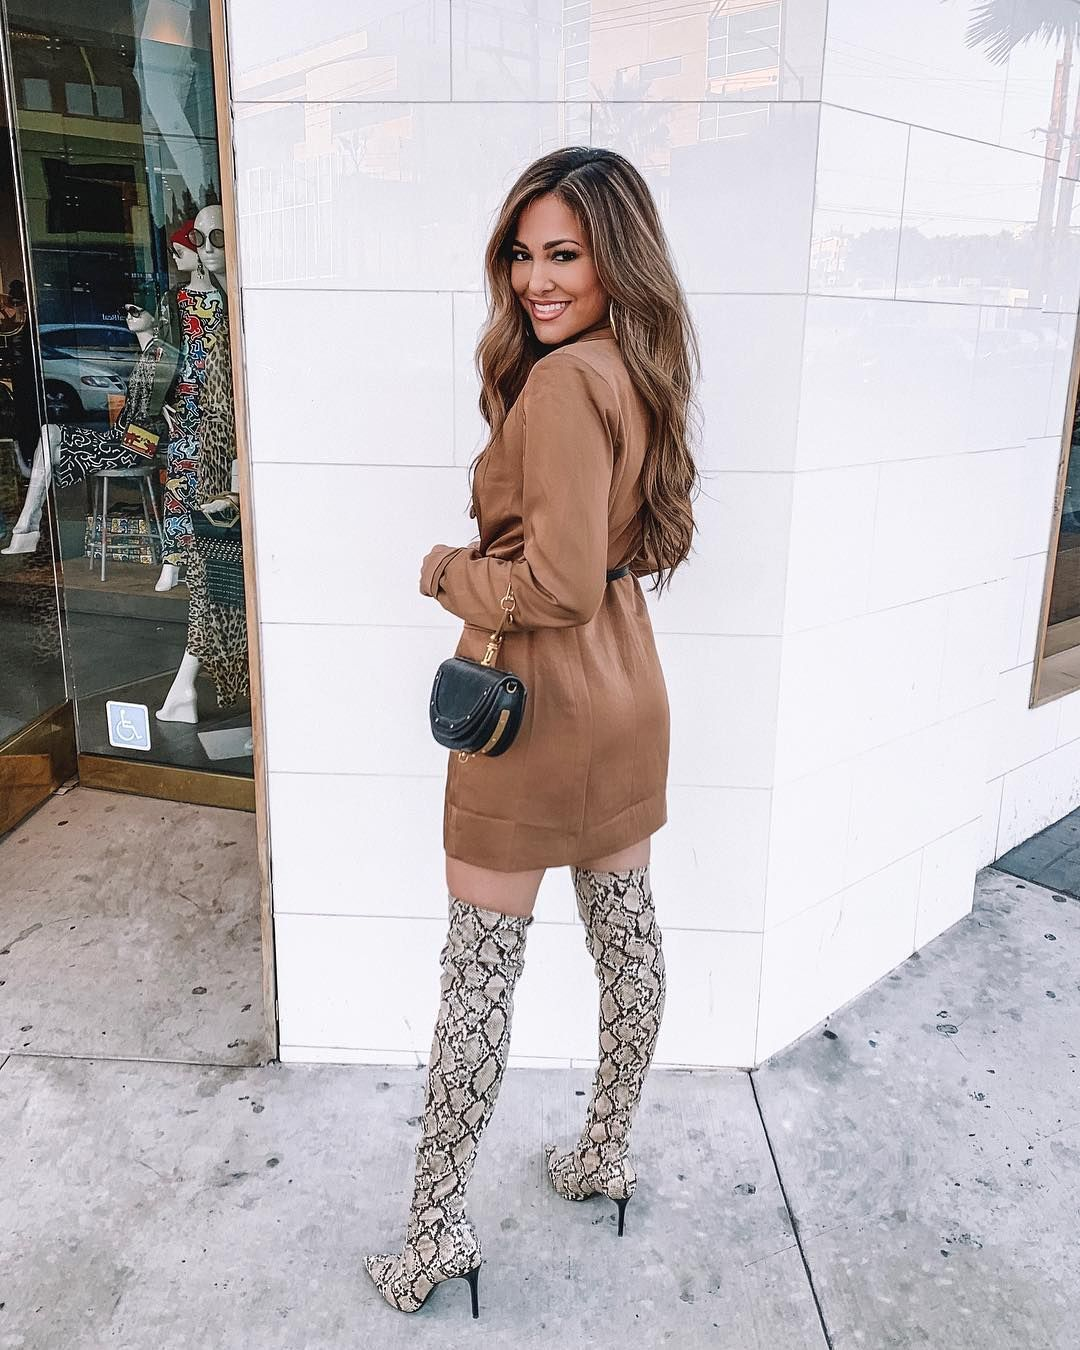 """Lina Noory on Instagram: """"Who's ready for 5 ways to #style these snakeskin thigh-high boots!? Video will be posted shortly! • #ootd #outfit #outfitinspo"""""""